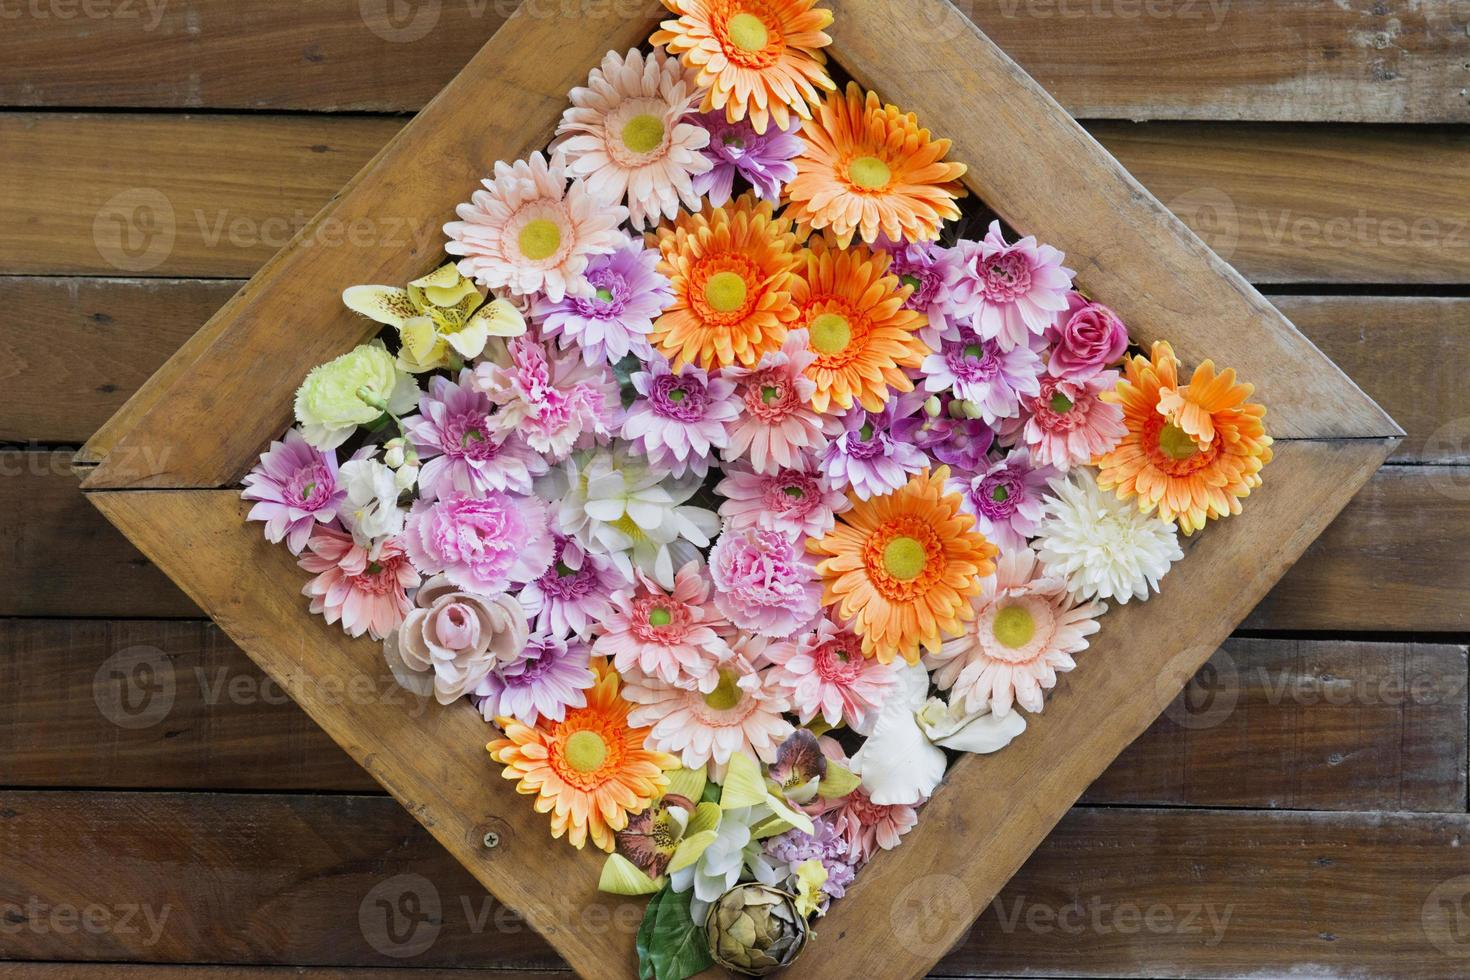 Many flowers held together beautifully photo